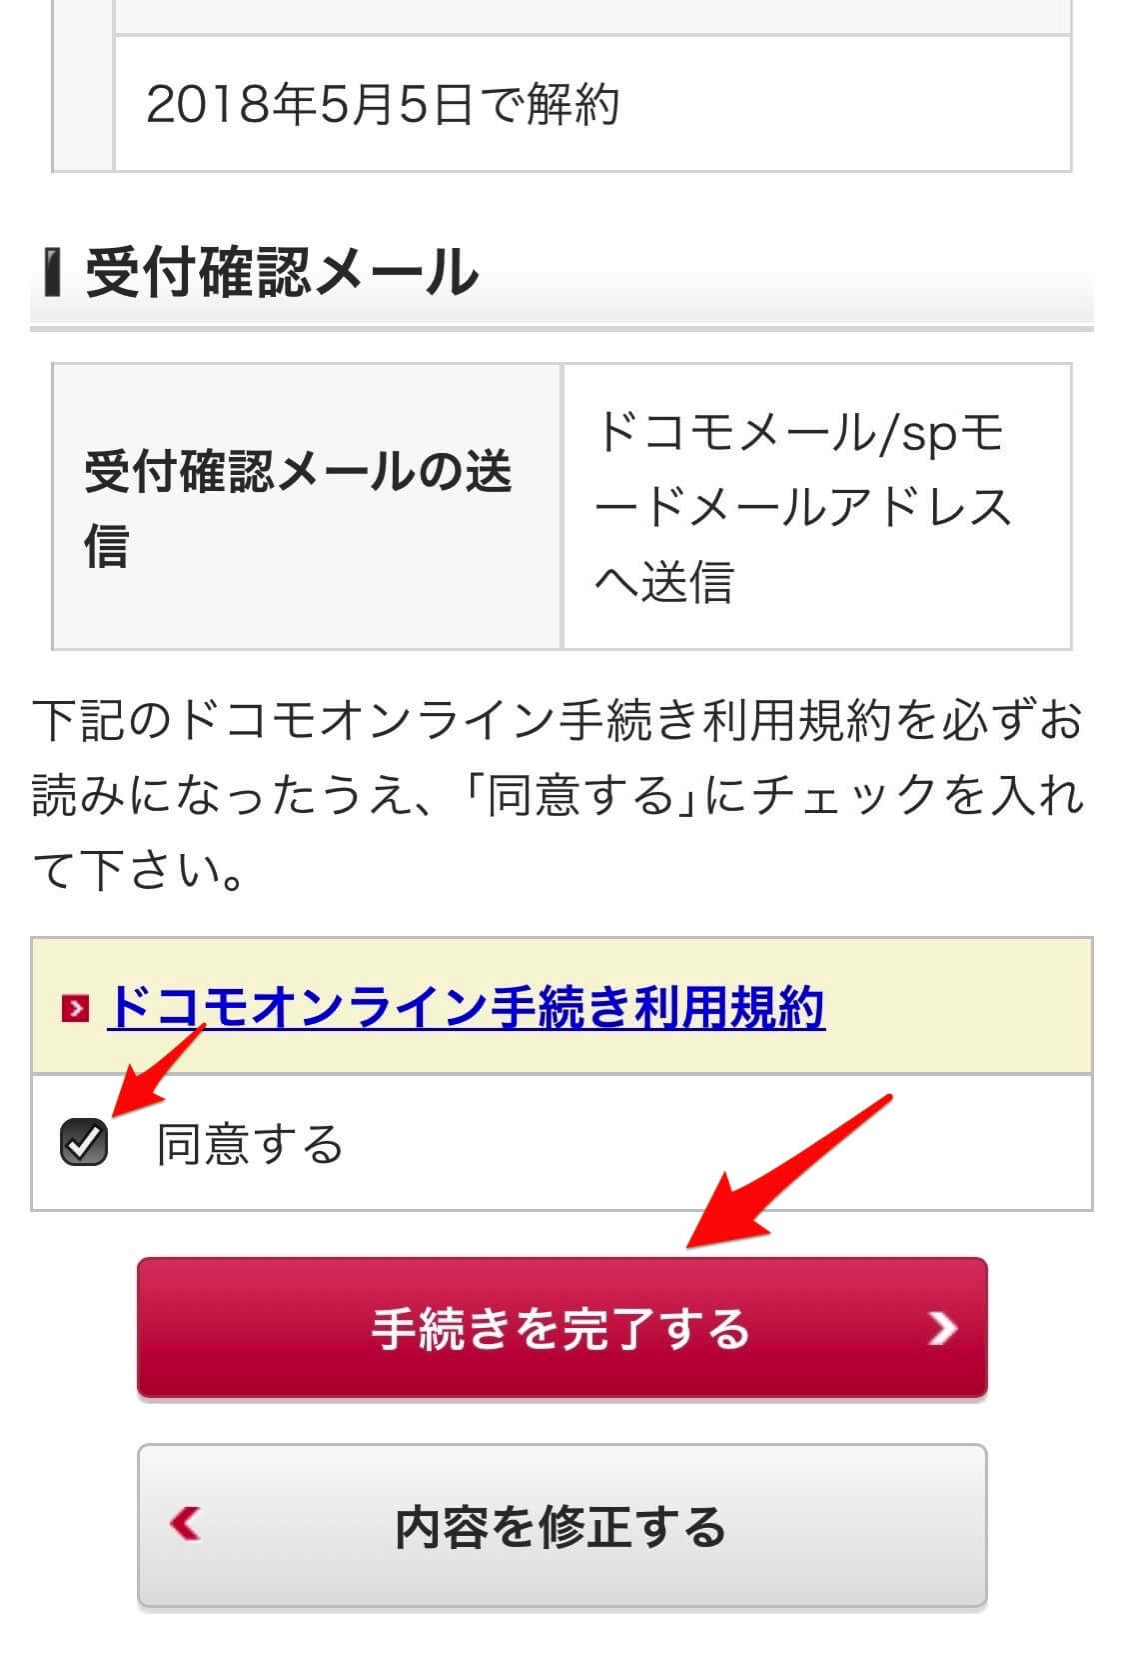 The docomo one number service cancellation of a contract 9